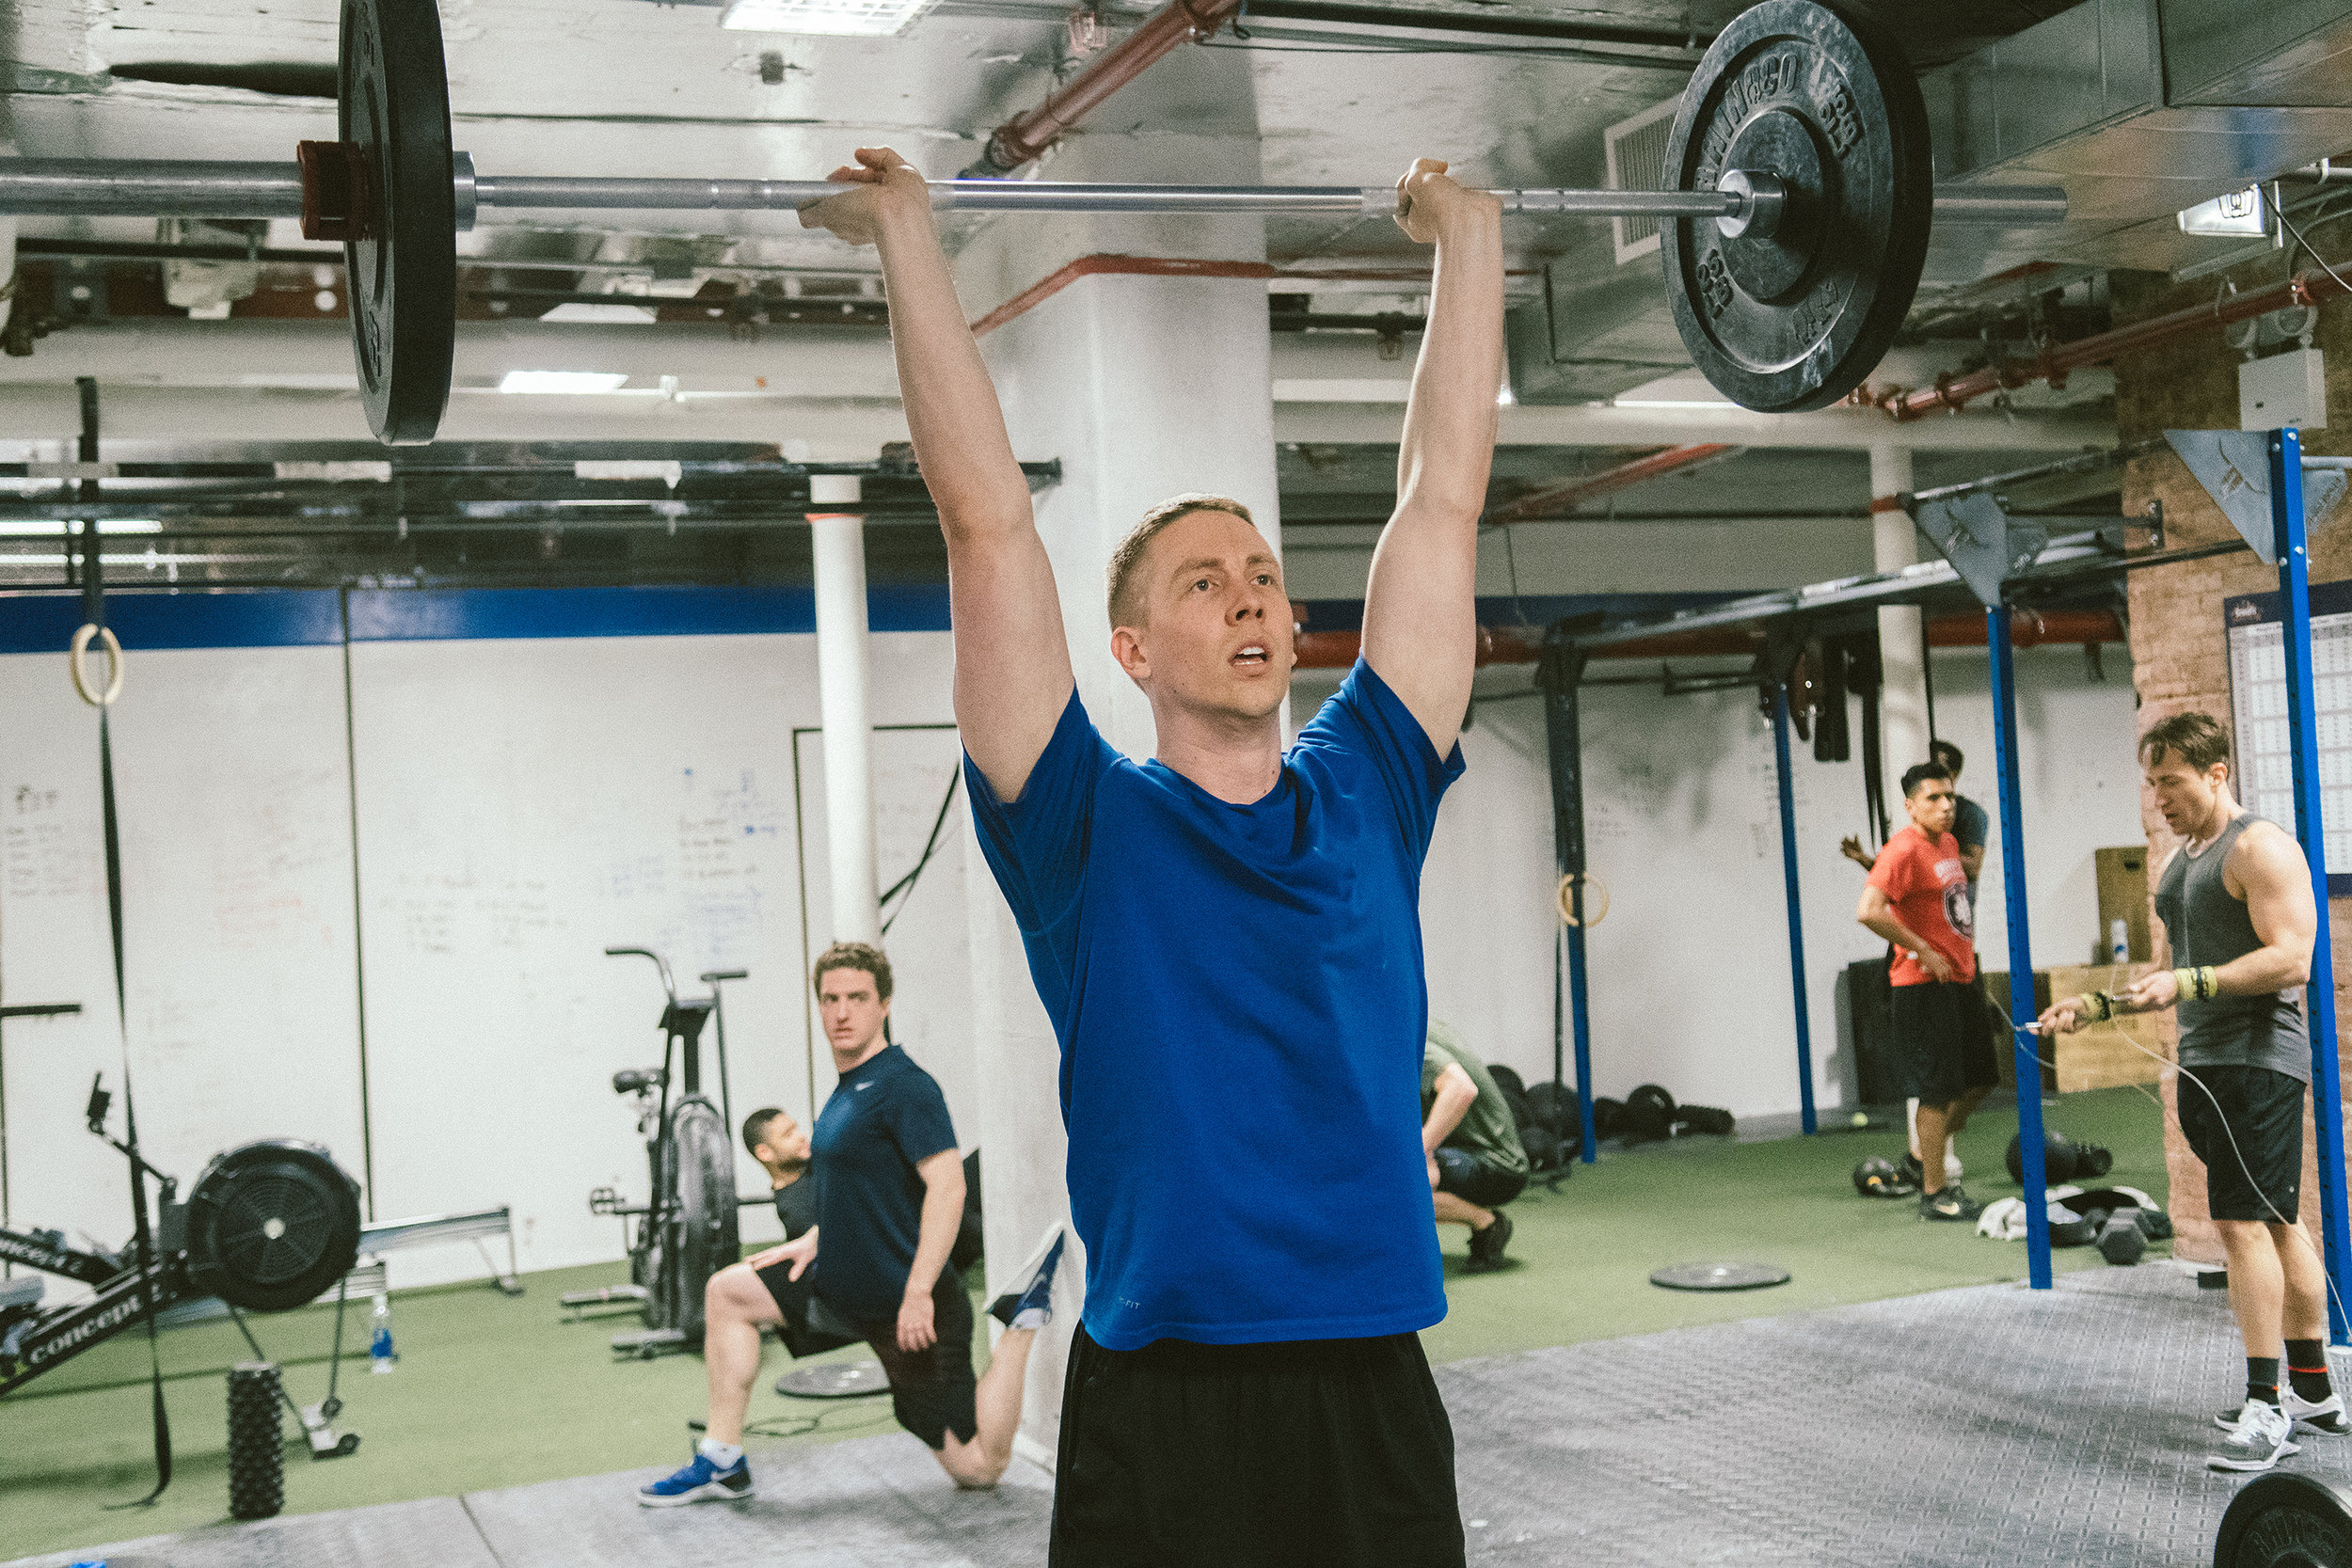 CrossFit Union Strong 17.5 014 20170325.jpg